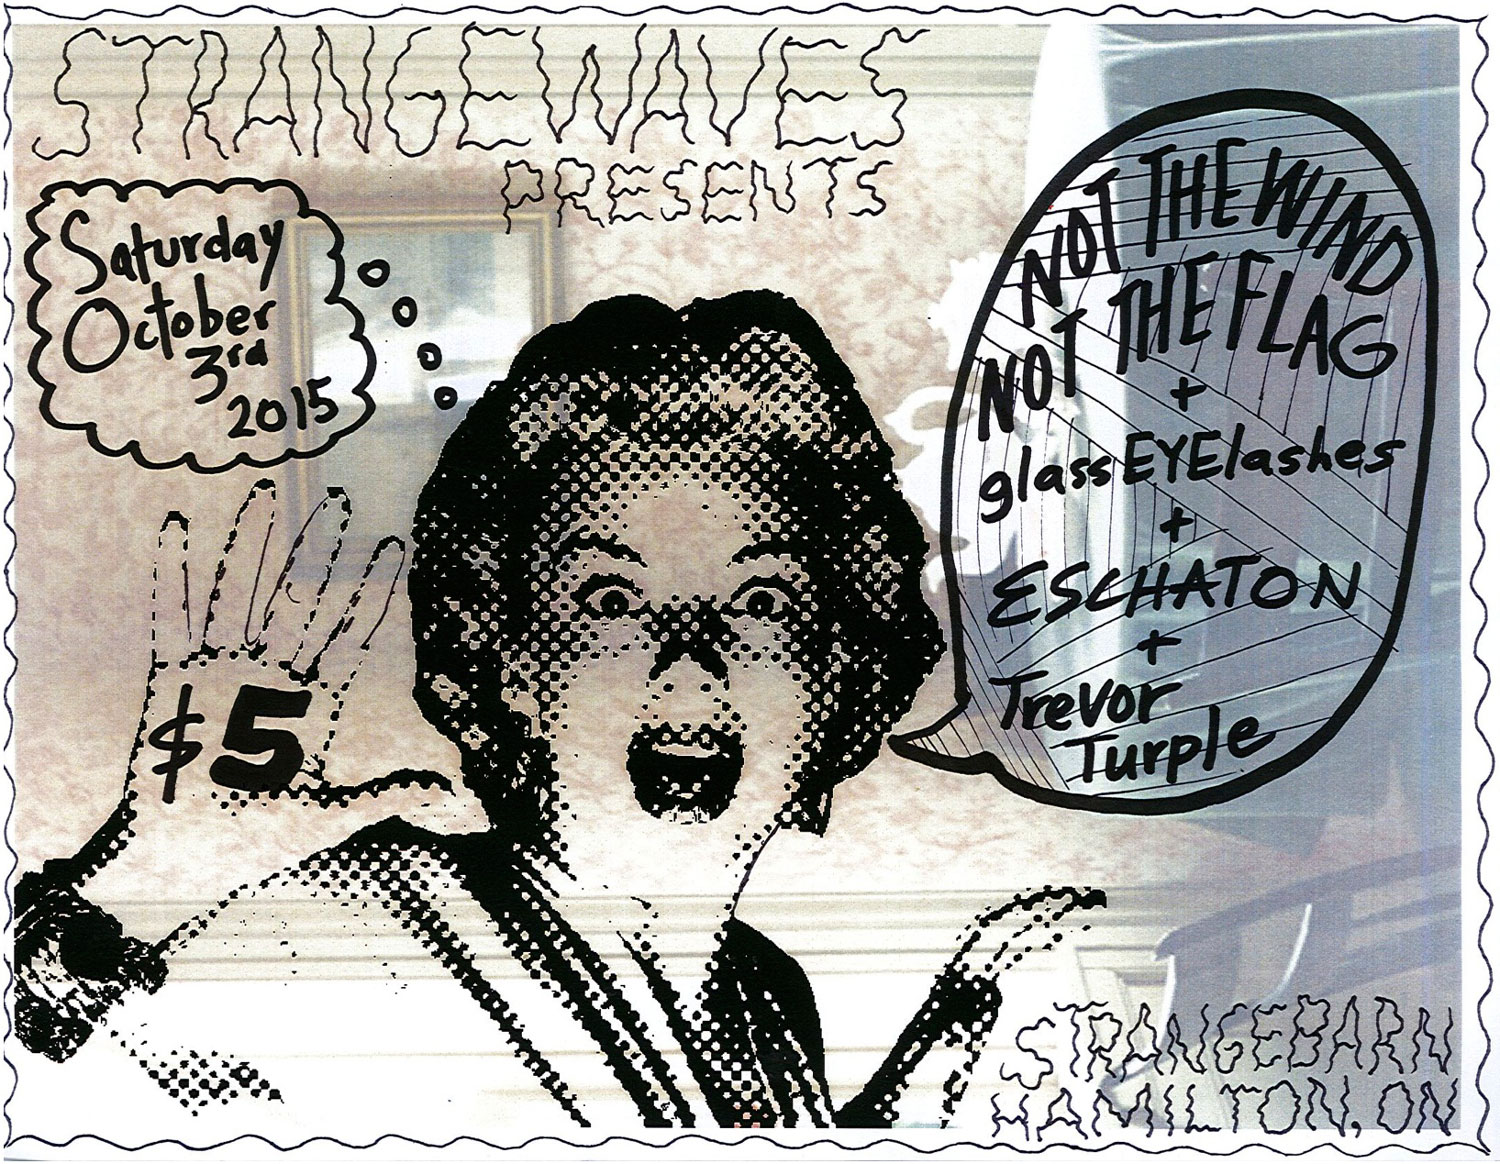 Not the Wind, Not the Flag (Hamilton vinyl release), w/ Eschaton, glassEYElashes & Trevor Turple  @Strangebarn